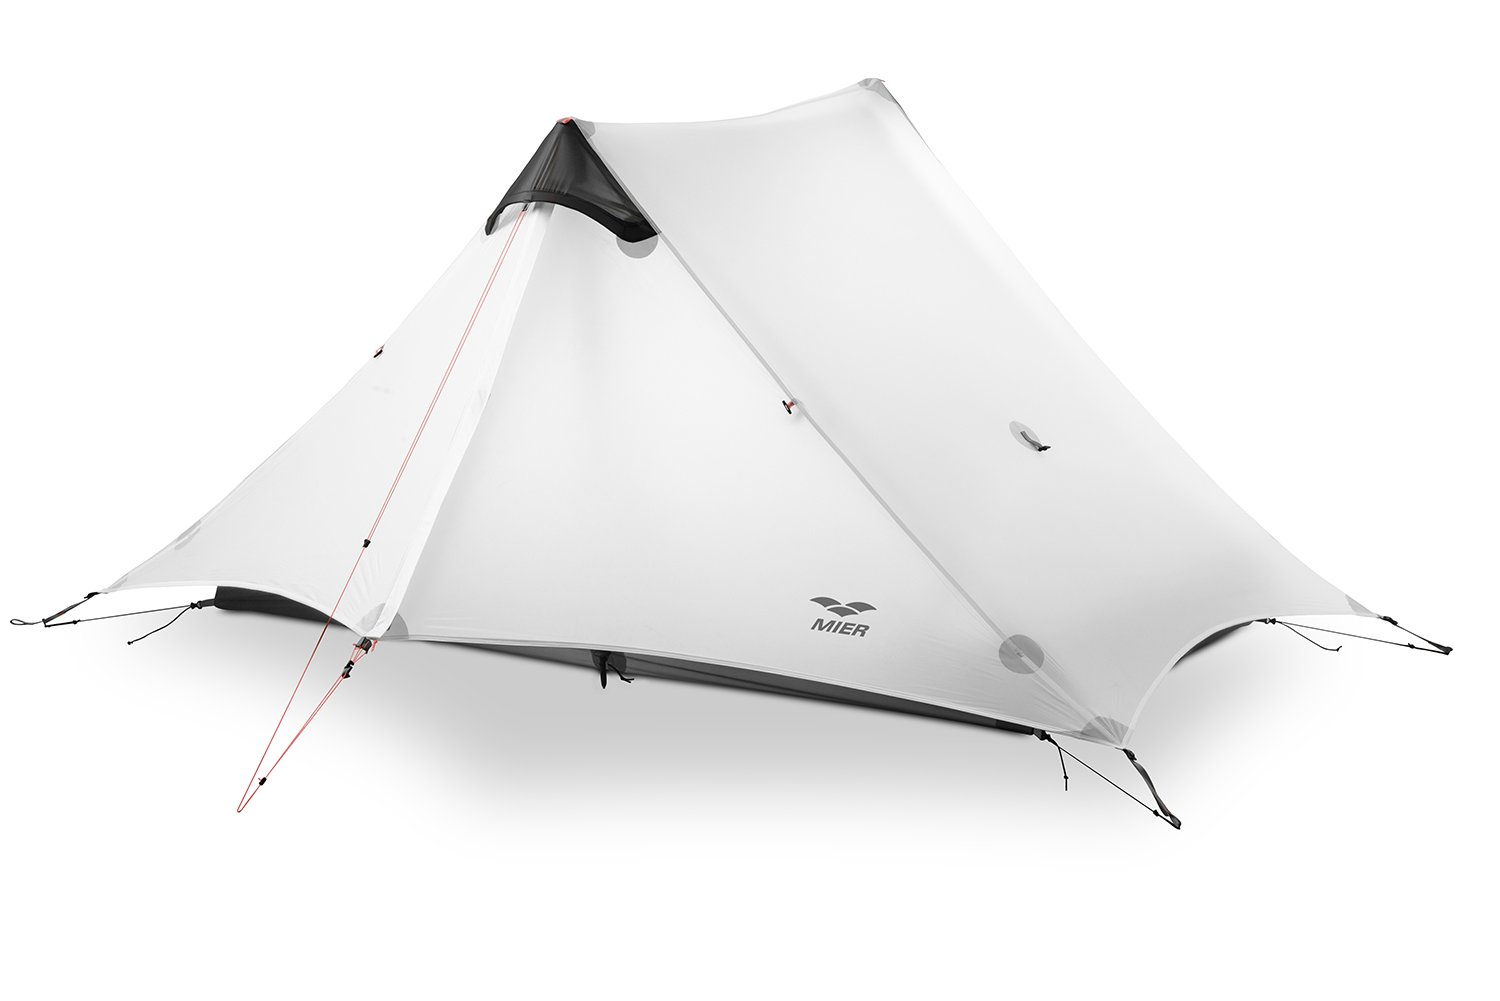 MIER Ultralight Tent 3-Season Backpacking Tent for 1-Person or 2-Person Camping, Trekking, Kayaking, Climbing, Hiking (Trekking Pole is NOT Included), White, 2-Person by MIER